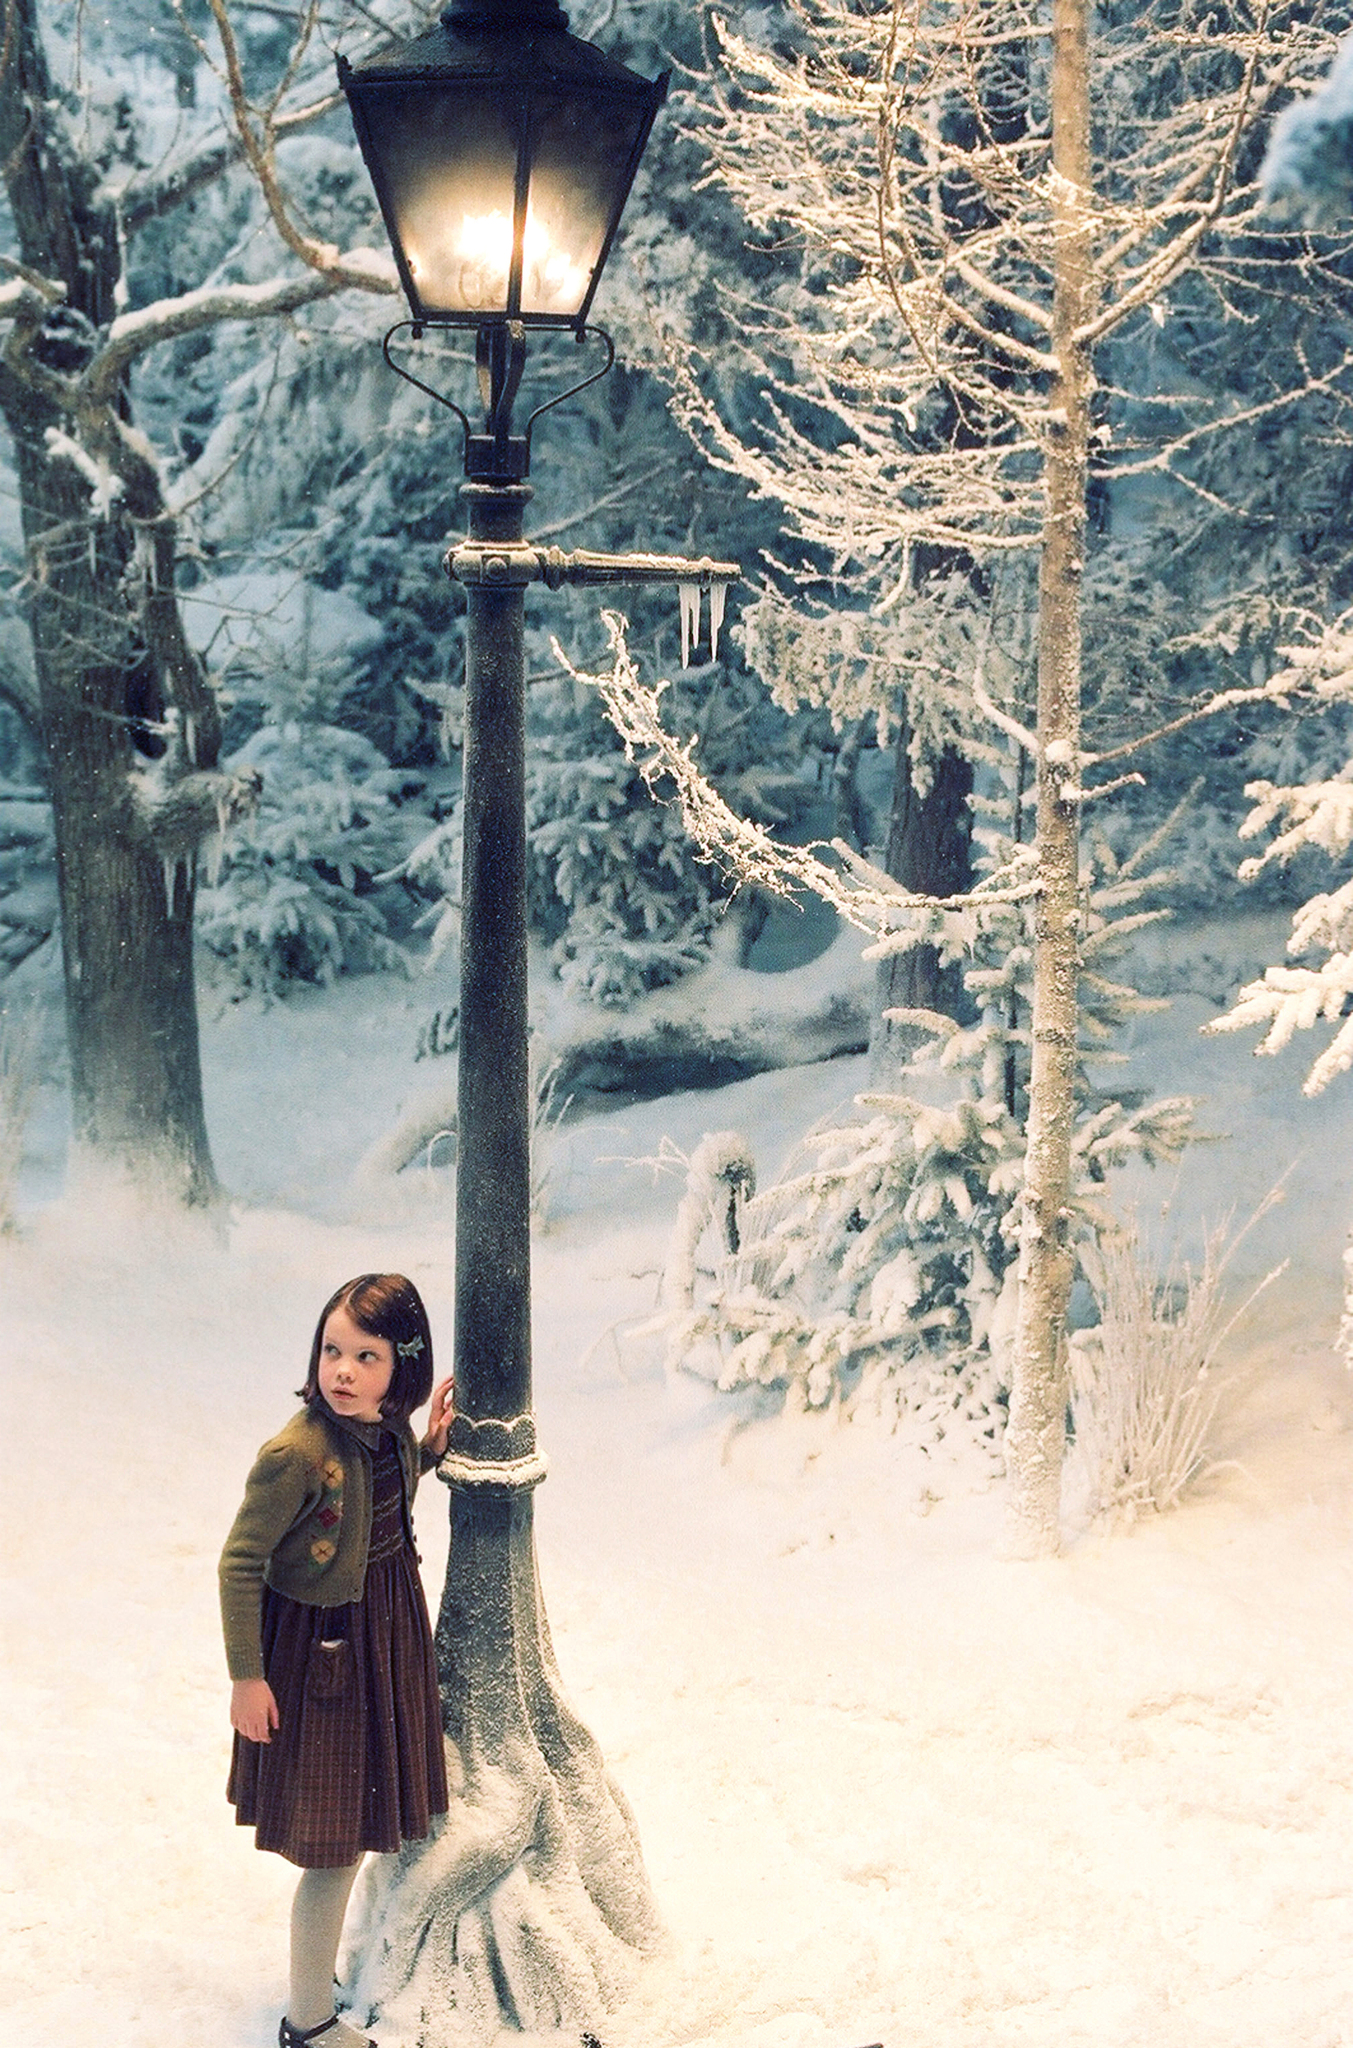 Georgie Henley in The Chronicles of Narnia: The Lion, the Witch and the Wardrobe (2005)